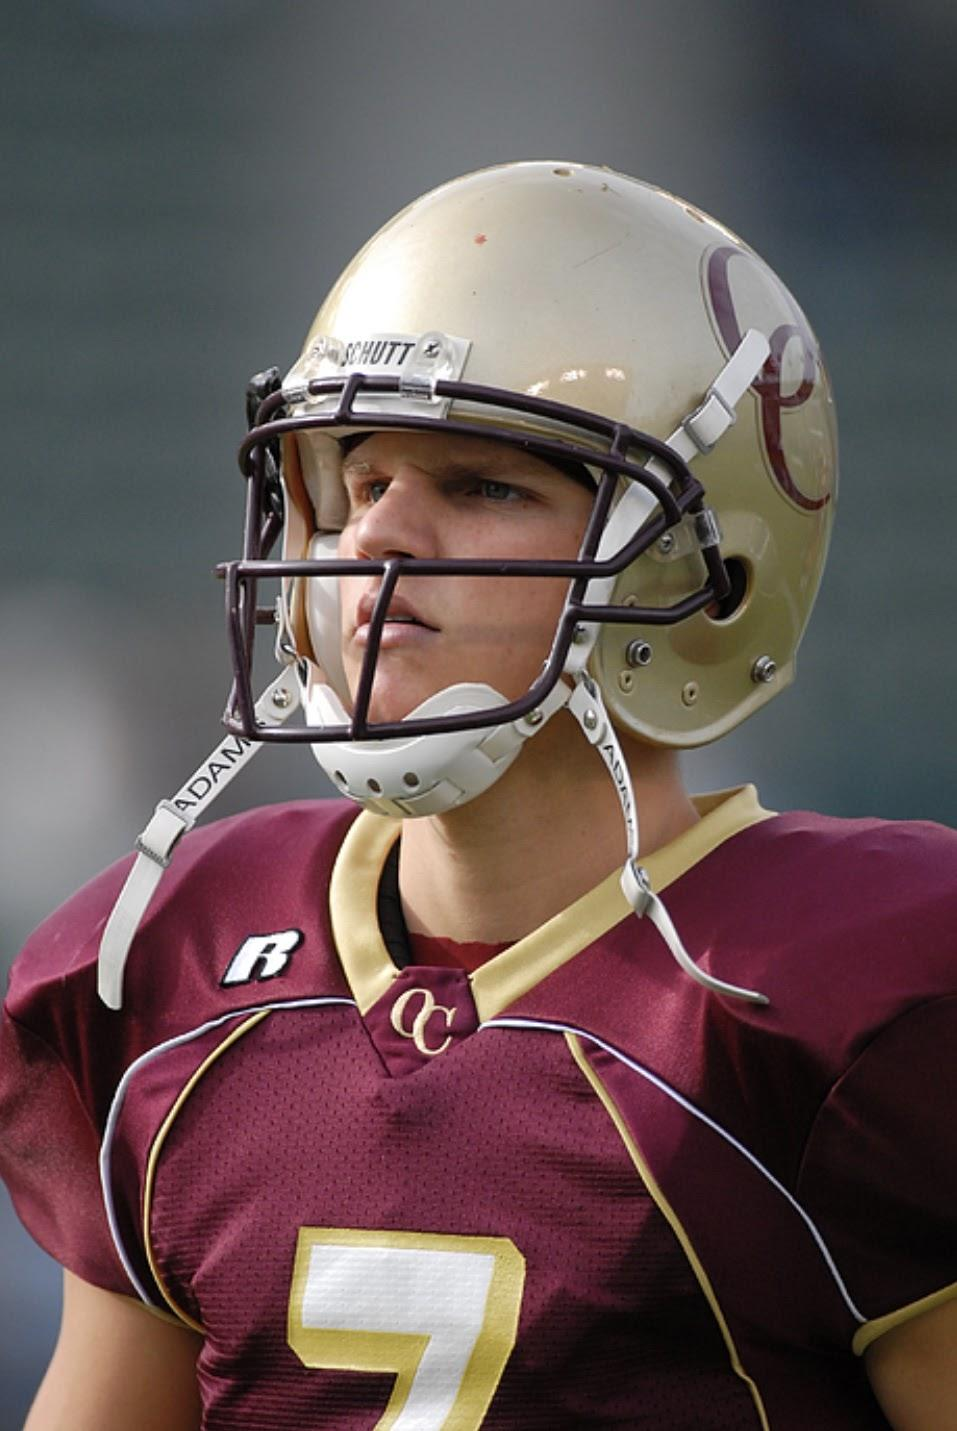 "Oaks Christian's most decorated player — Jimmy Clausen. He went 42–0 as a four-year starter for the Lions, was a U.S. Army All-American and played at Notre Dame. After five forgettable seasons in the NFL, Clausen is widely known as a draft ""bust."" Photo courtesy of Icon Sports Wire"